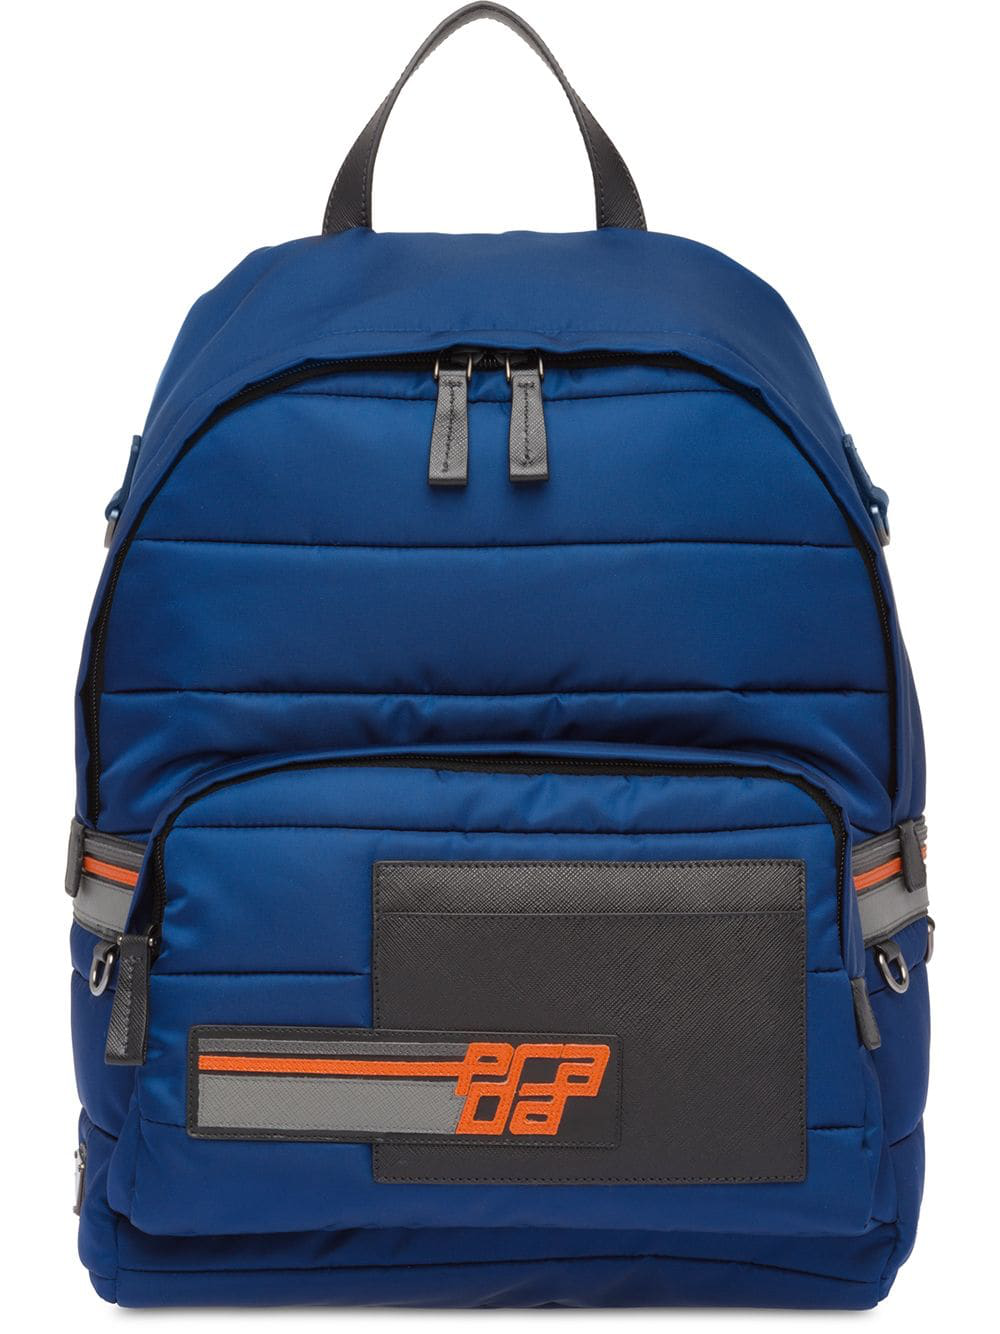 0eb7eef979f920 Prada Nylon And Saffiano Leather Backpack - Blue | ModeSens